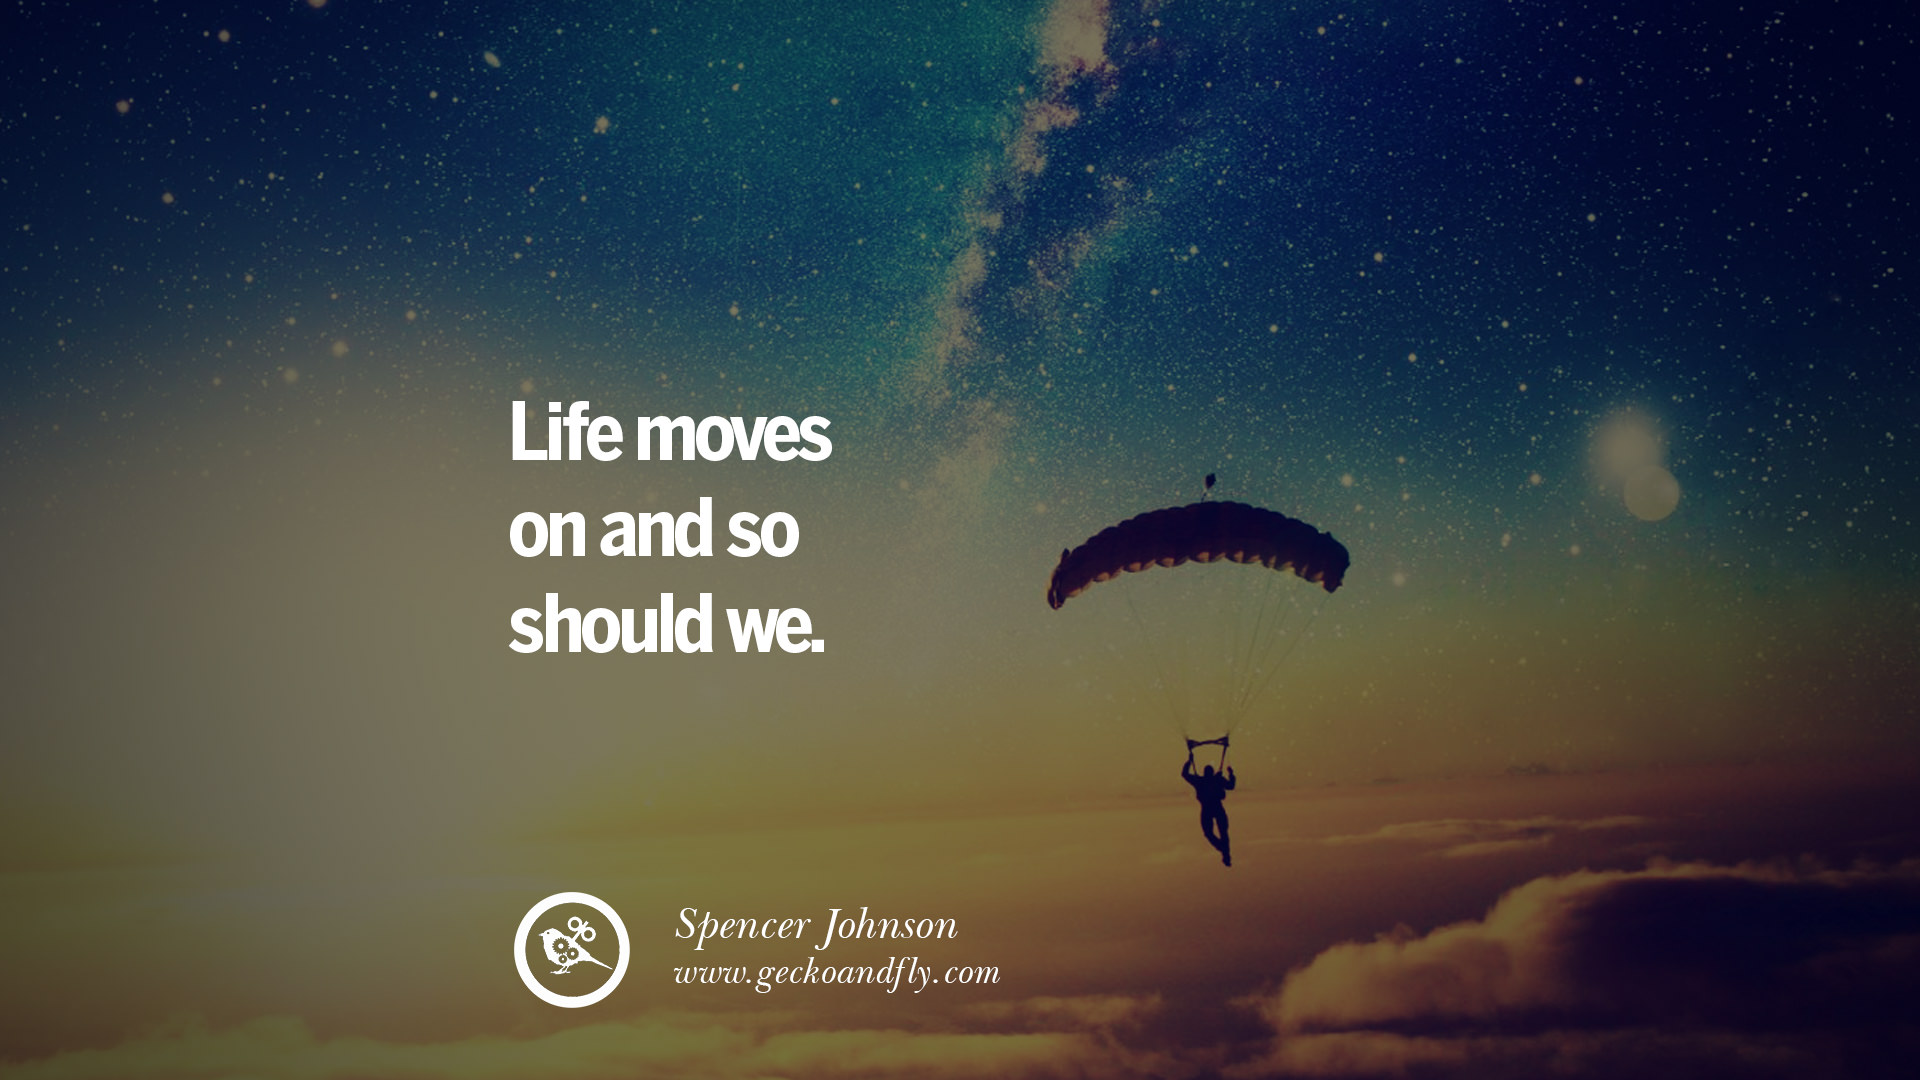 Charming 50 Quotes On Life About Keep Moving On And Letting Go Of Someone [ Part 1 ]